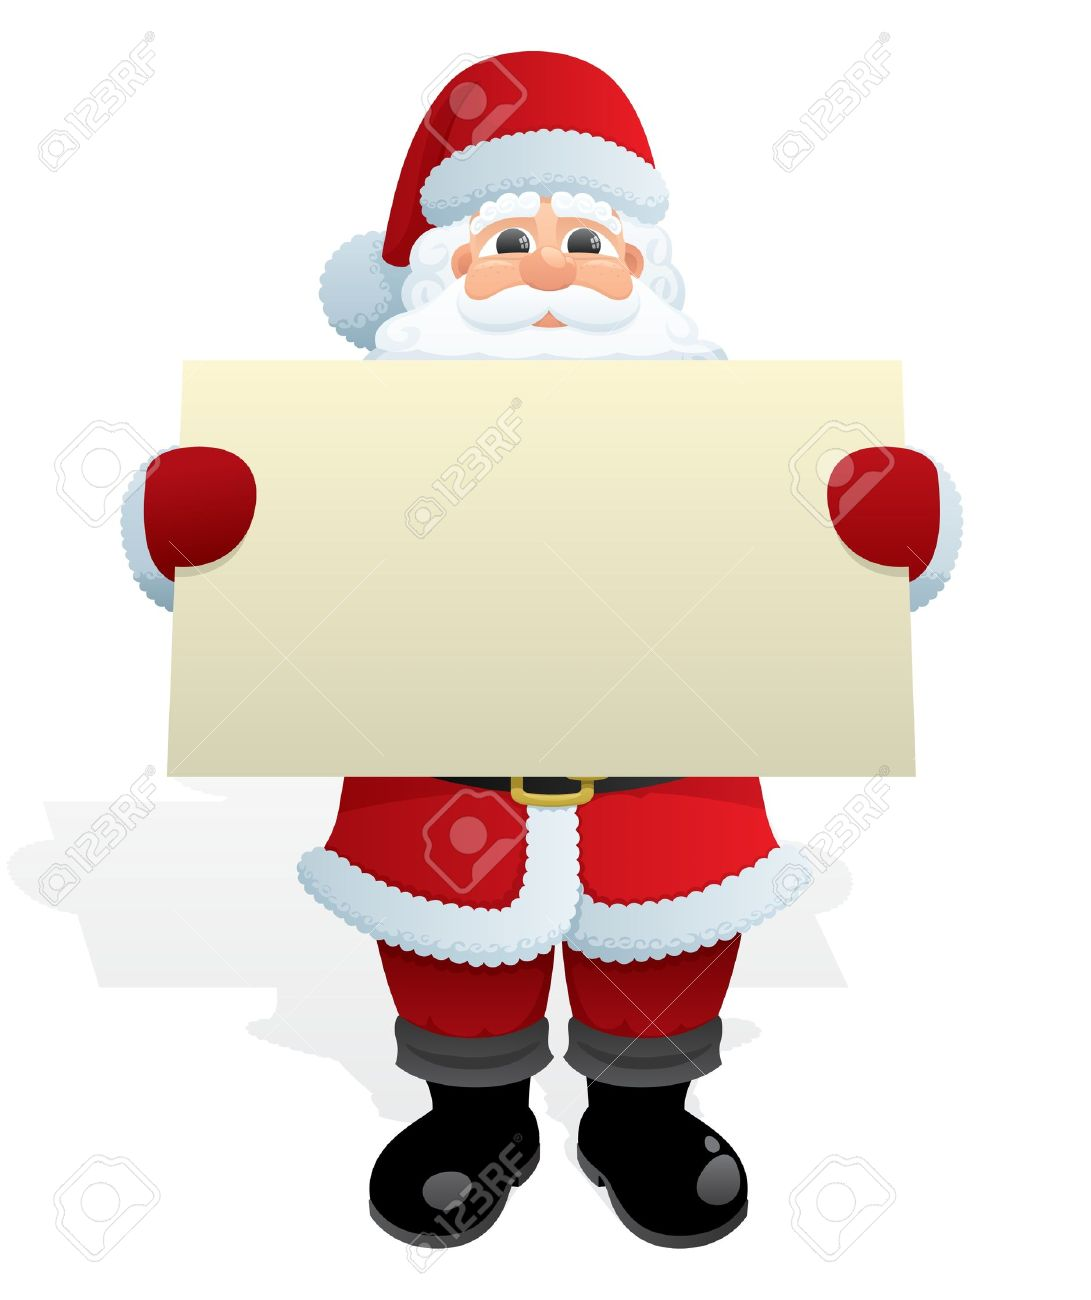 Santa Claus, delivering a Christmas message. No transparency used. Basic (linear) gradients used. Stock Vector - 7653400